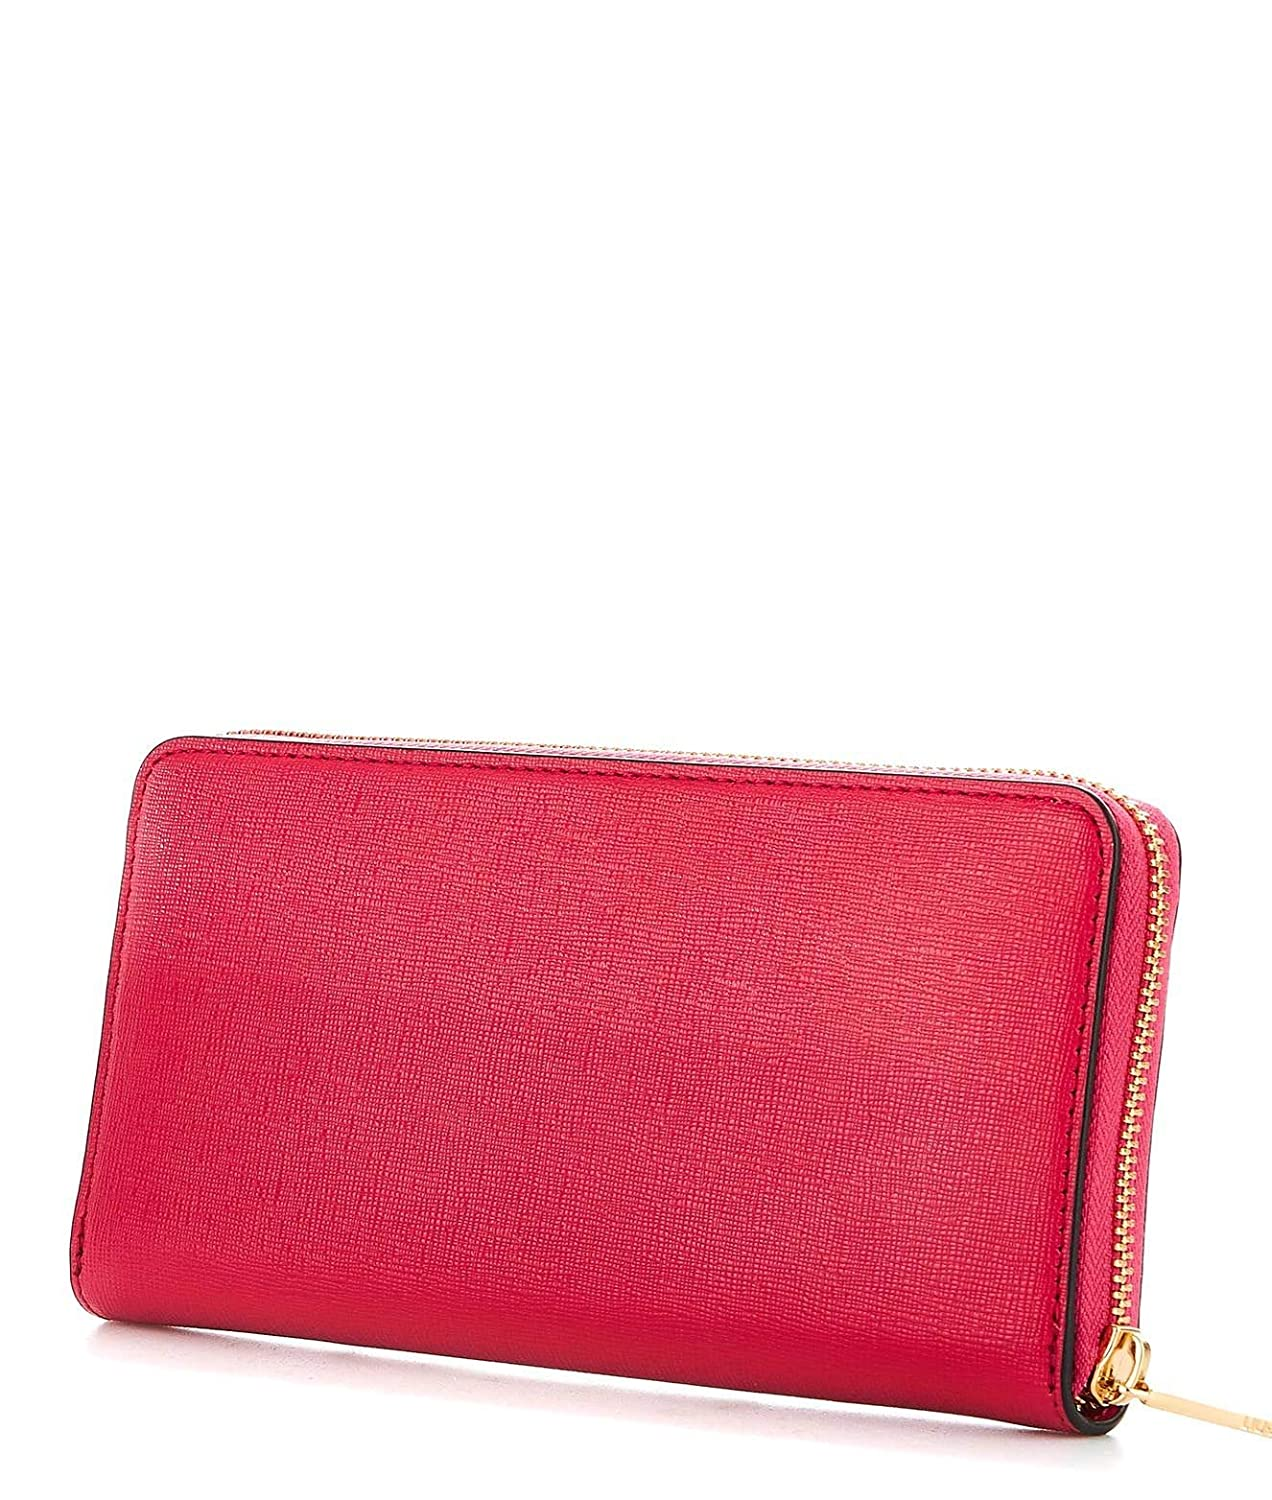 Liu Jo Womens N19174e008781852 Red Leather Wallet